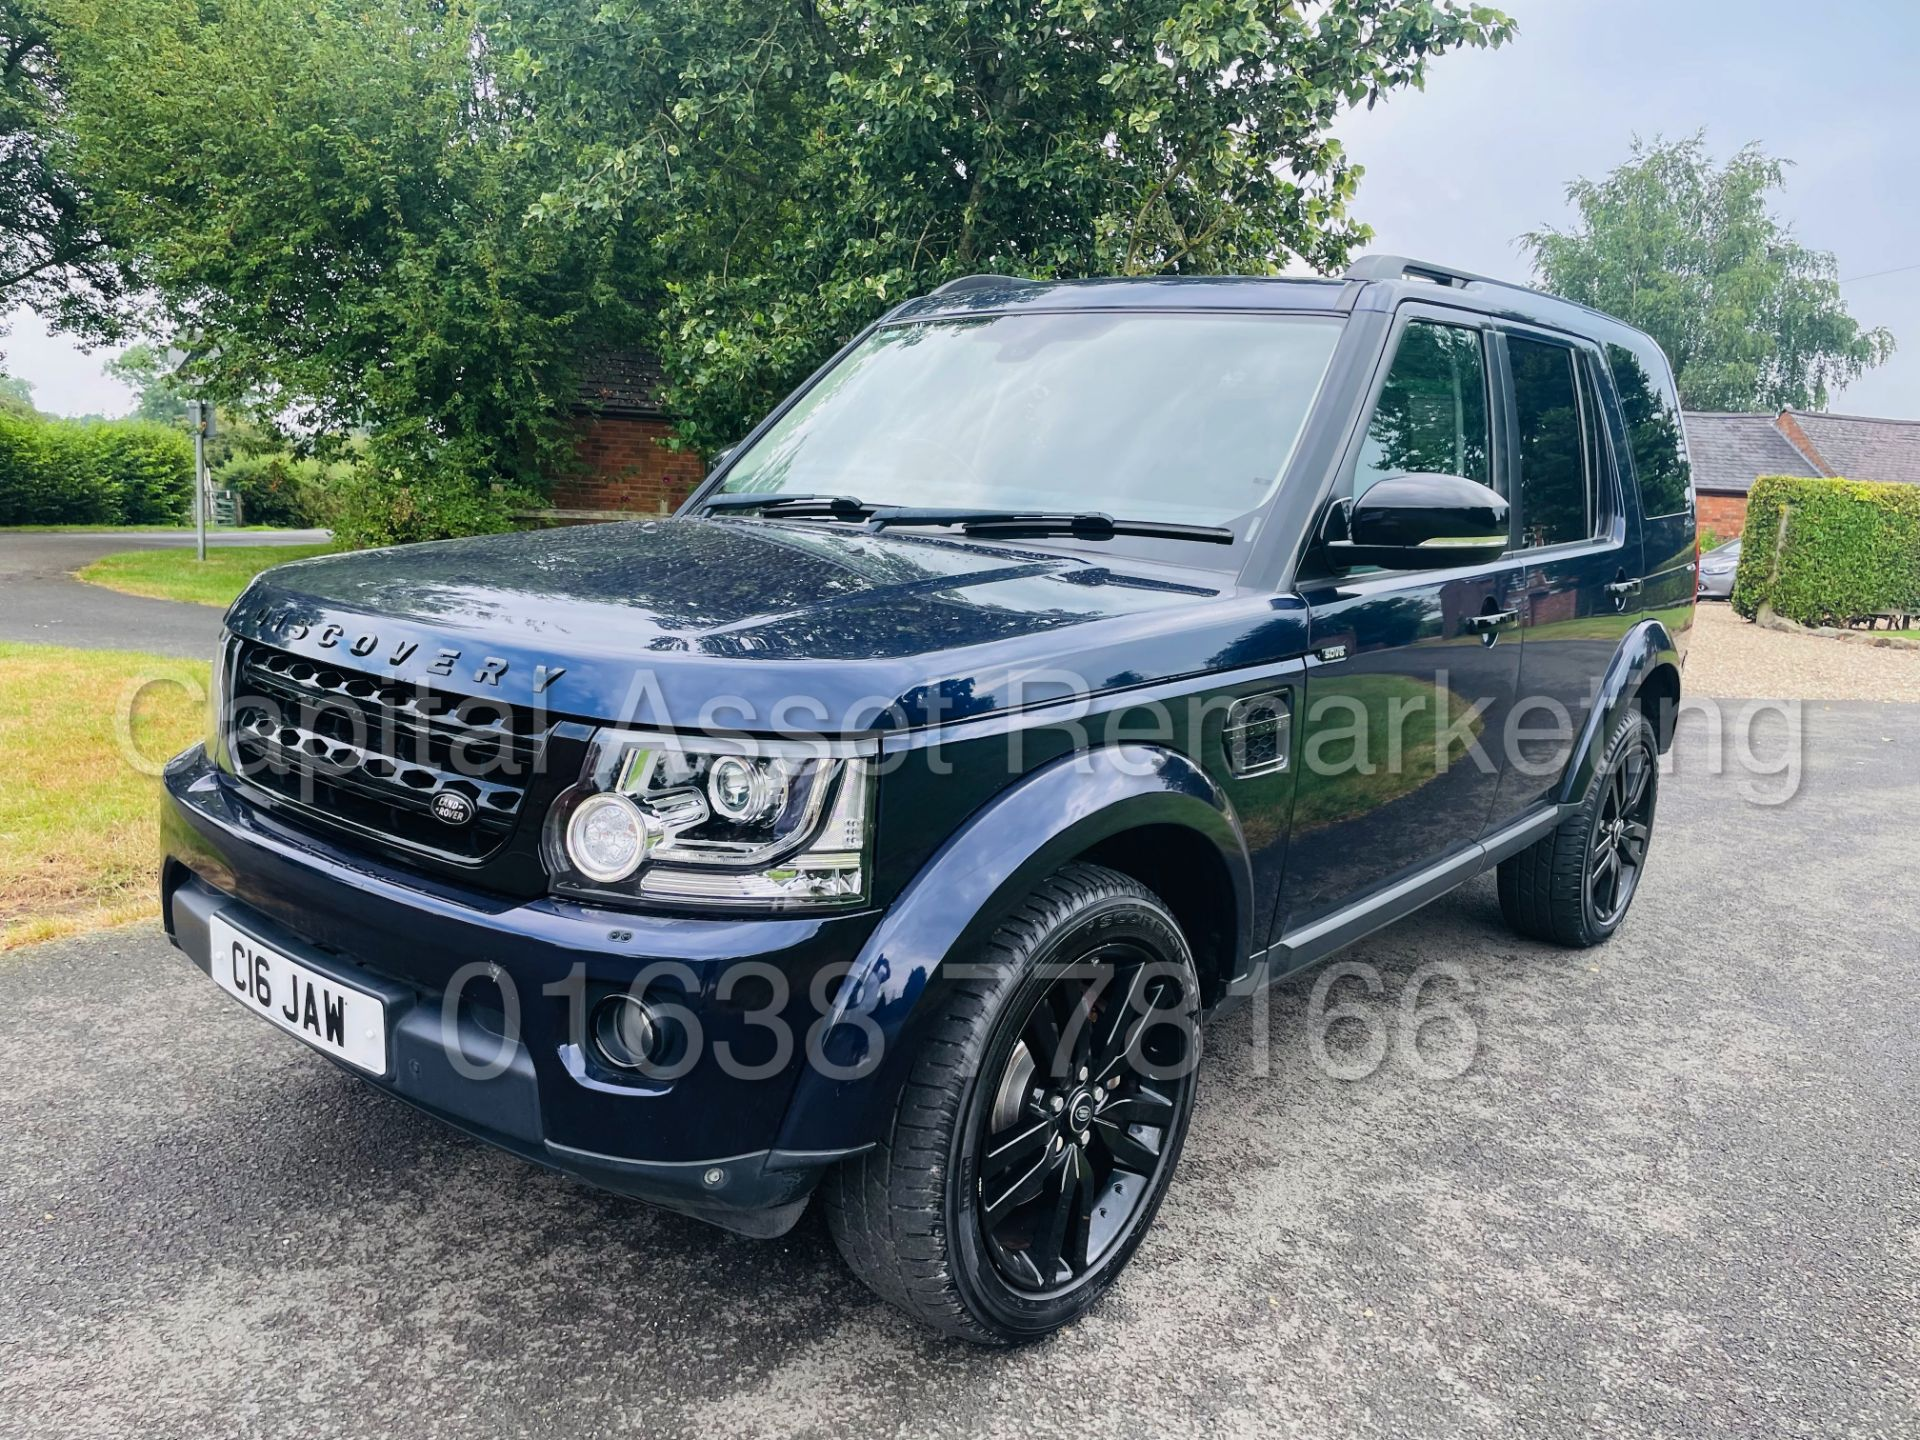 LAND ROVER DISCOVERY 4 *HSE* 7 SEATER SUV (2014 - NEW MODEL) '3.0 SDV6 - 255 BHP - 8 SPEED AUTO' - Image 5 of 61